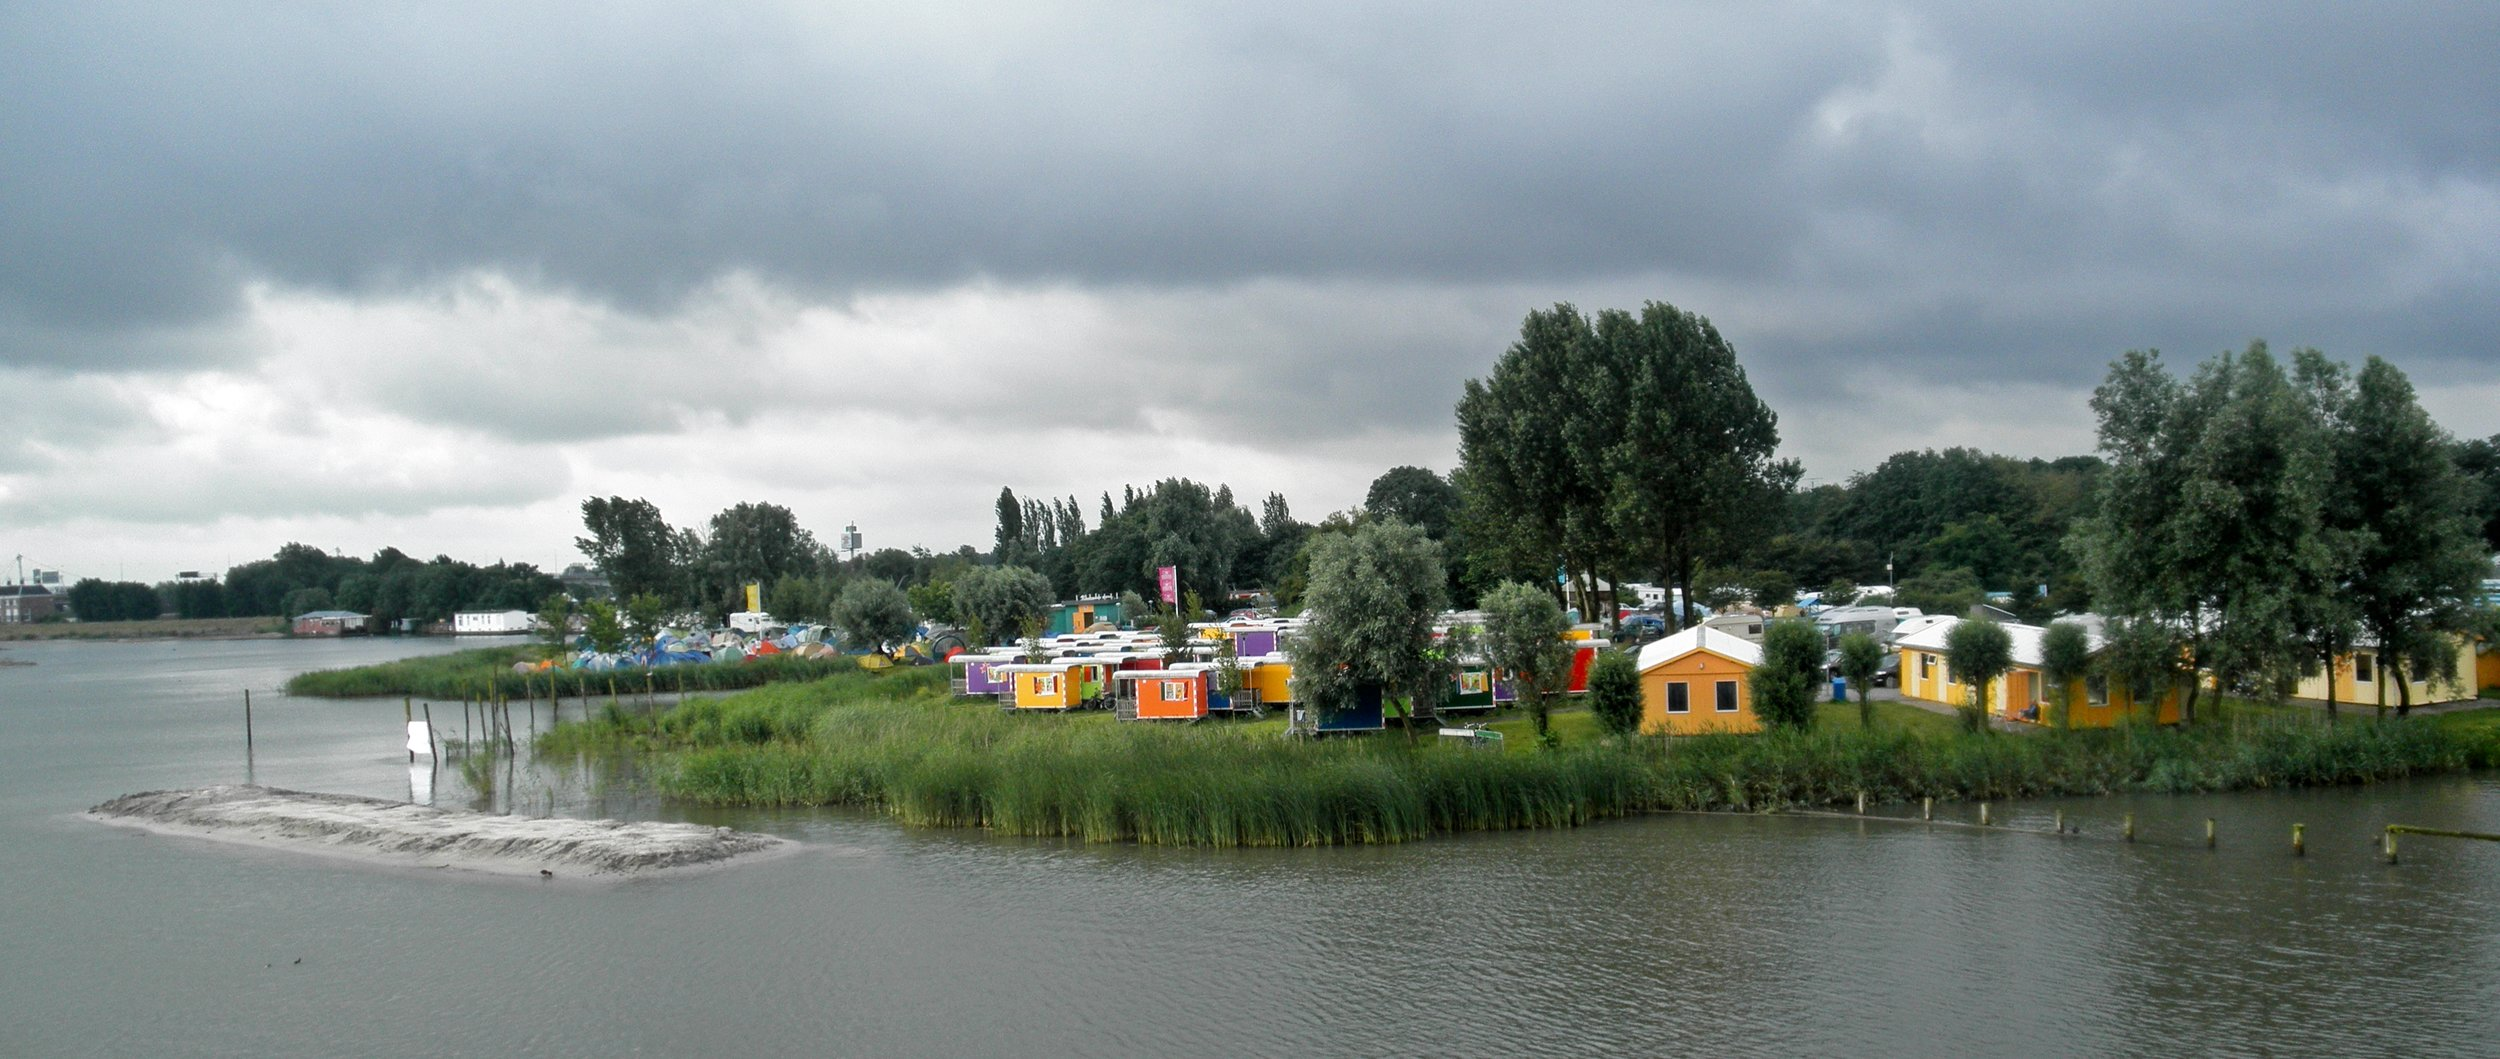 Camp Zeeburg, on the banks of the river.